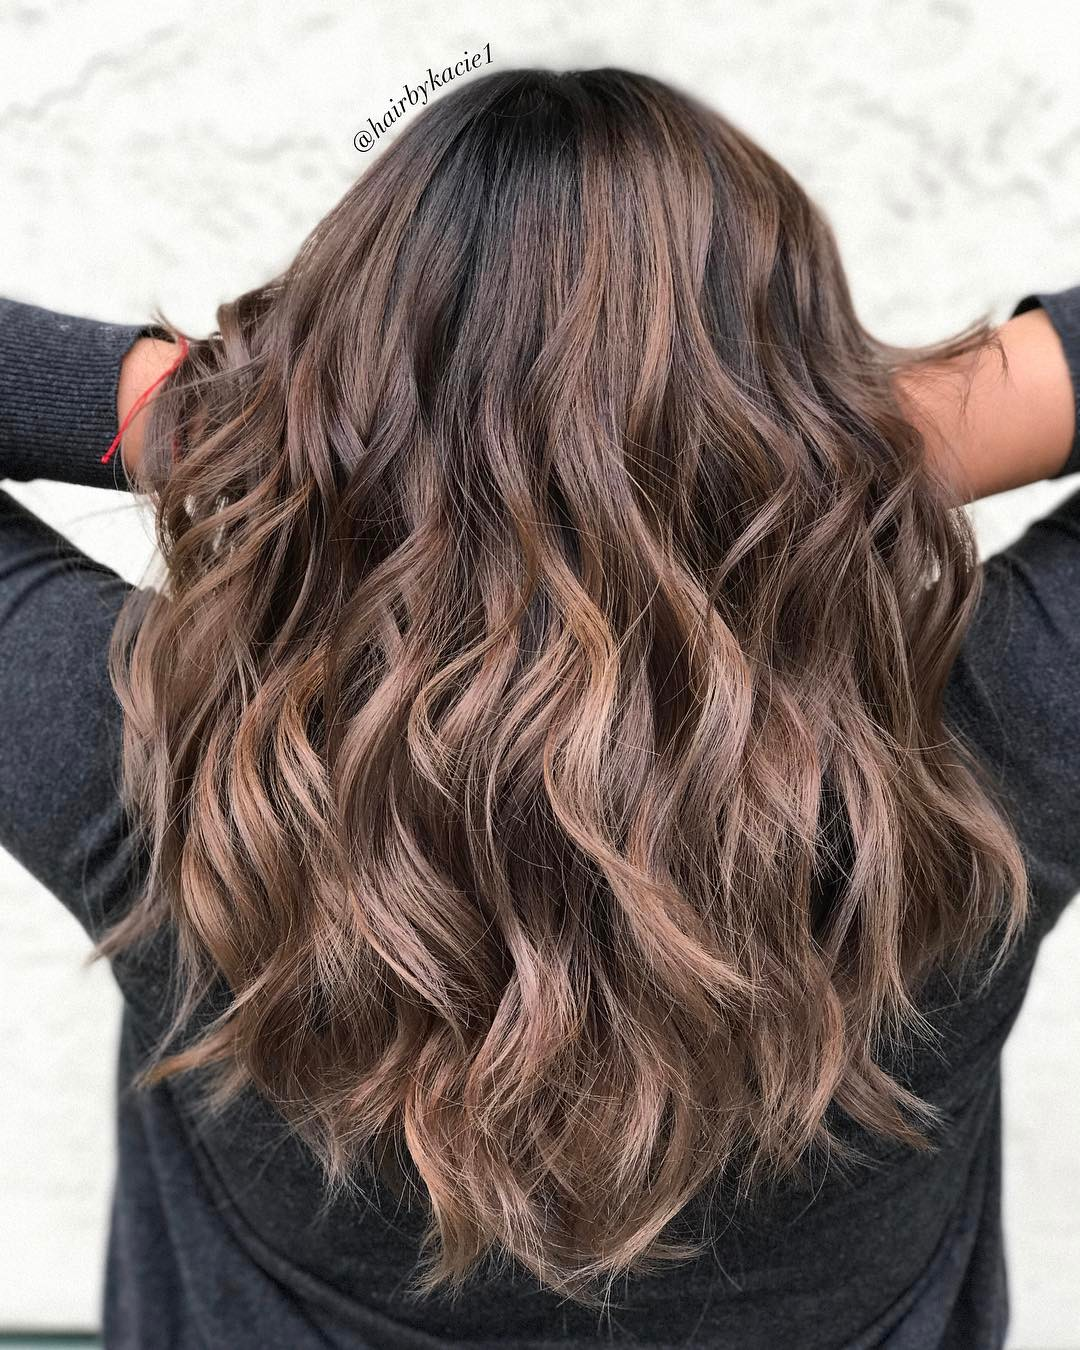 Mid-Back Wavy Layered Hairstyle